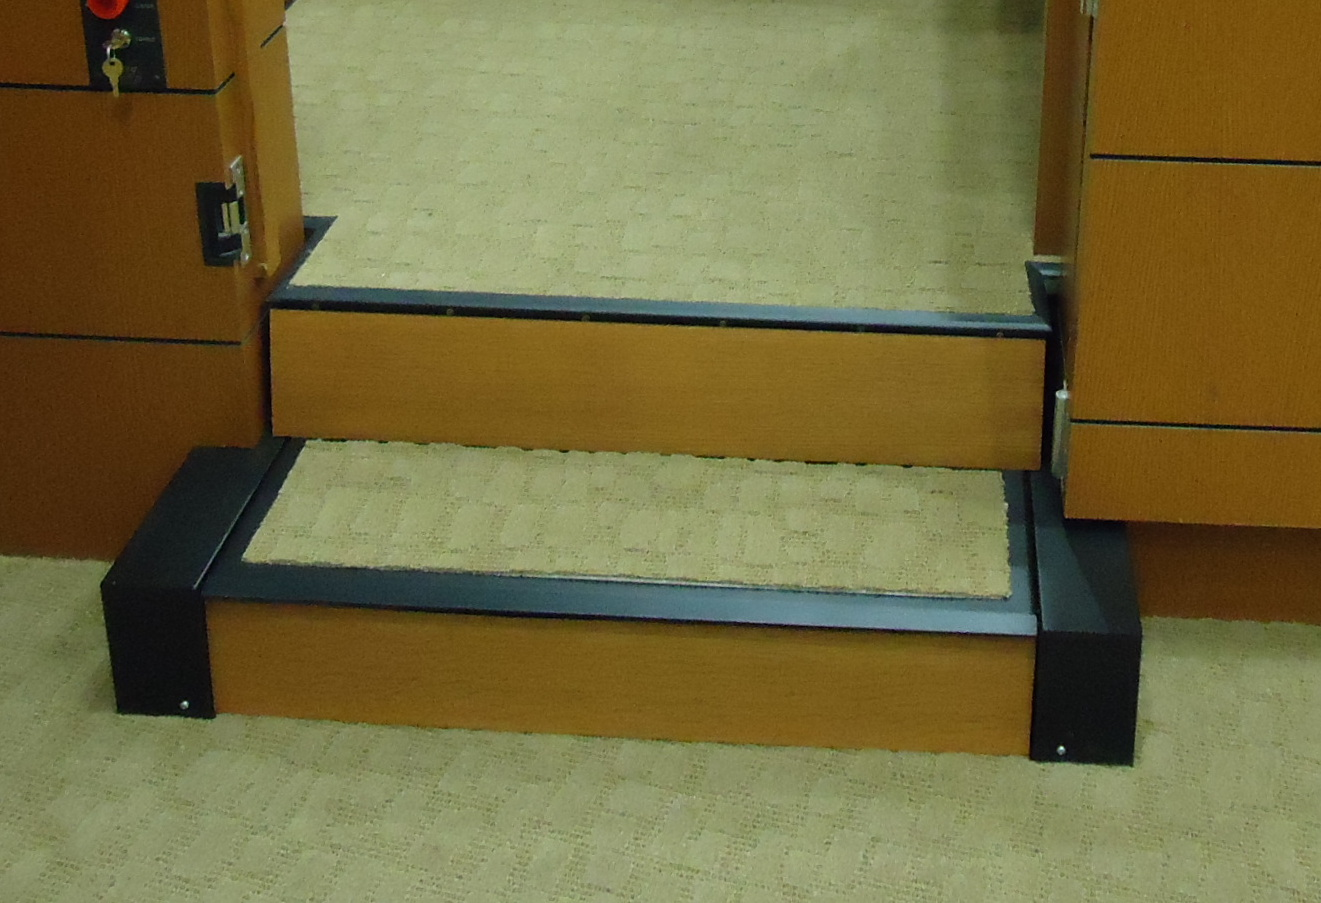 Close-up view of operable step in step position.